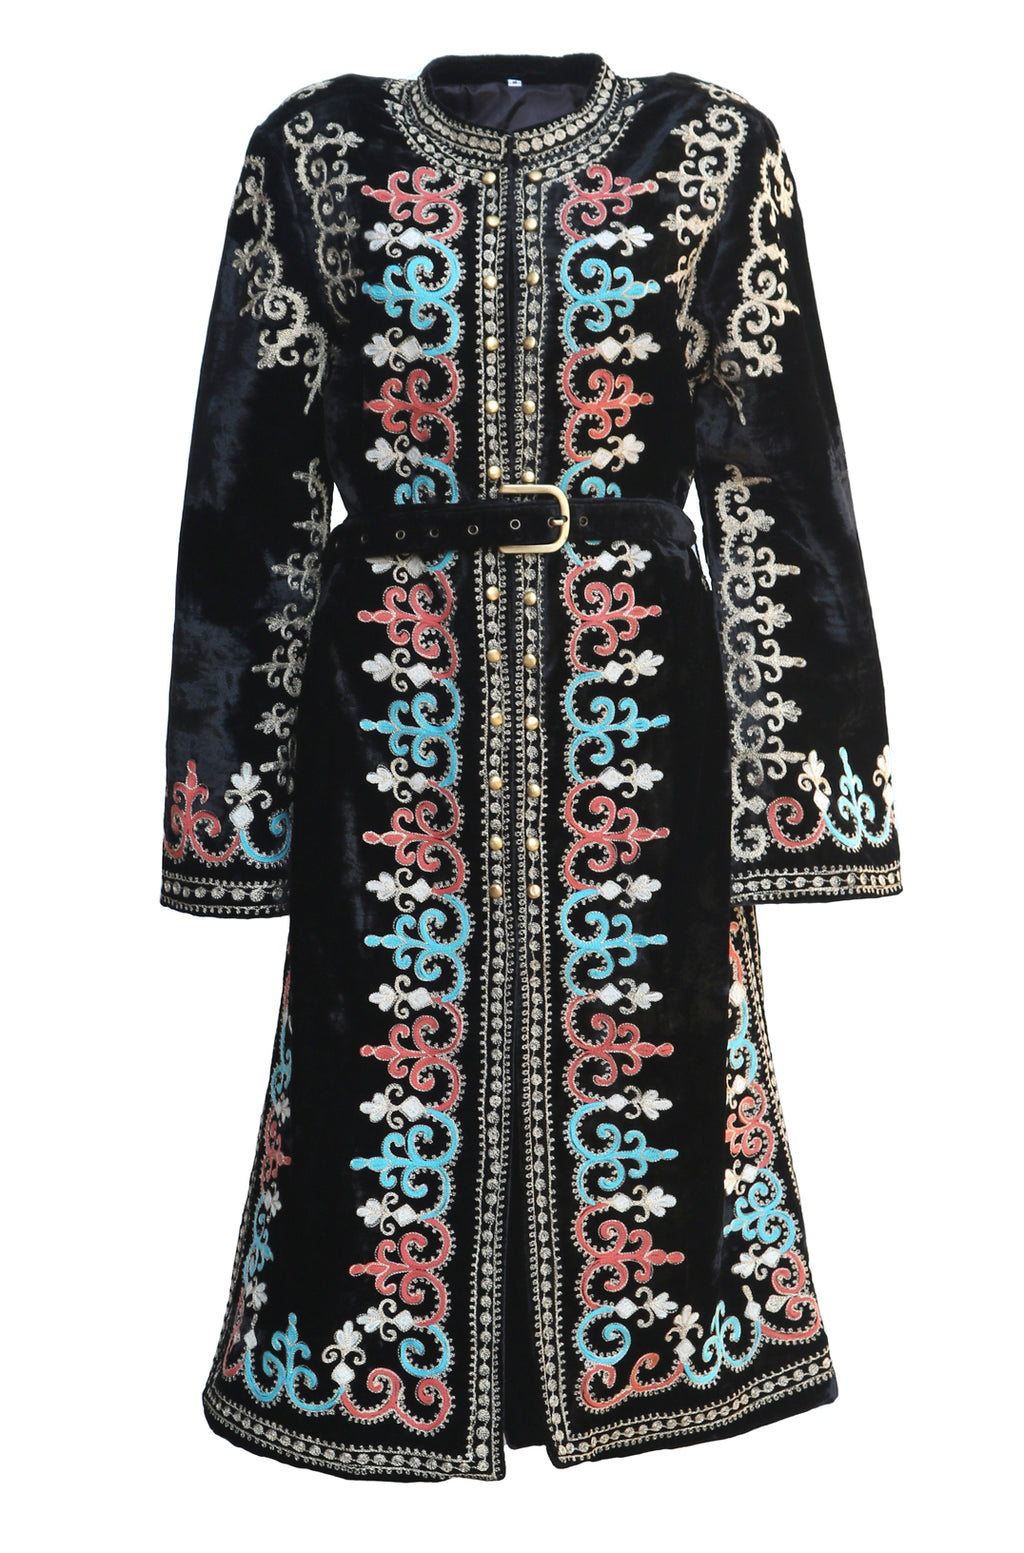 Fanm Mon MARROKKE Vyshyvanka Black Velvet Jacket HAND Embroidered MULTI COLOR Pattern